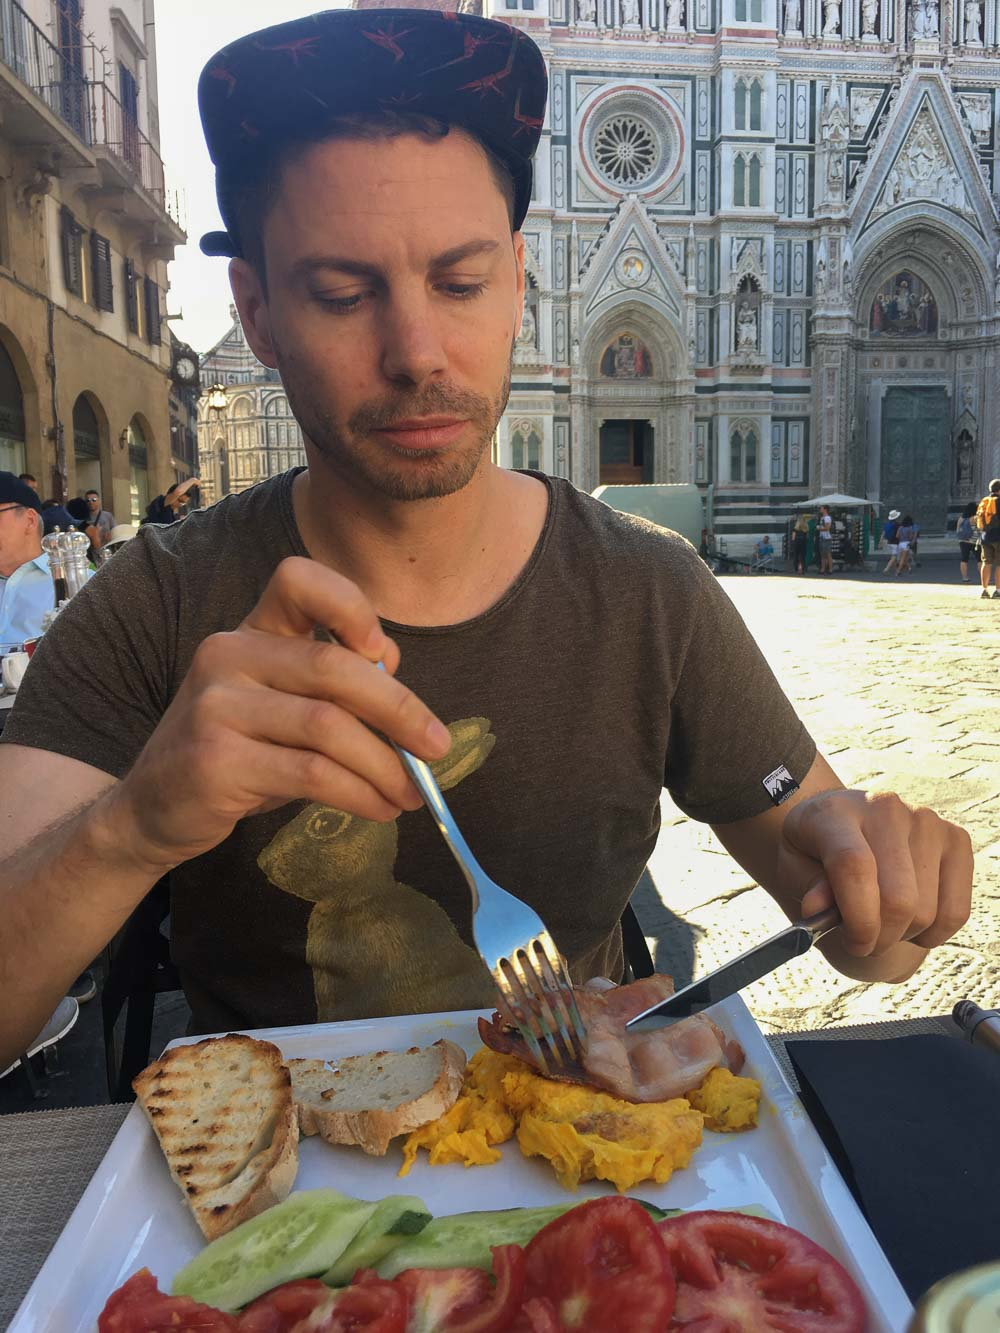 Jerry Enjoying Breakfast with a view of the Santa Maria del Fiore in Florence, Italy